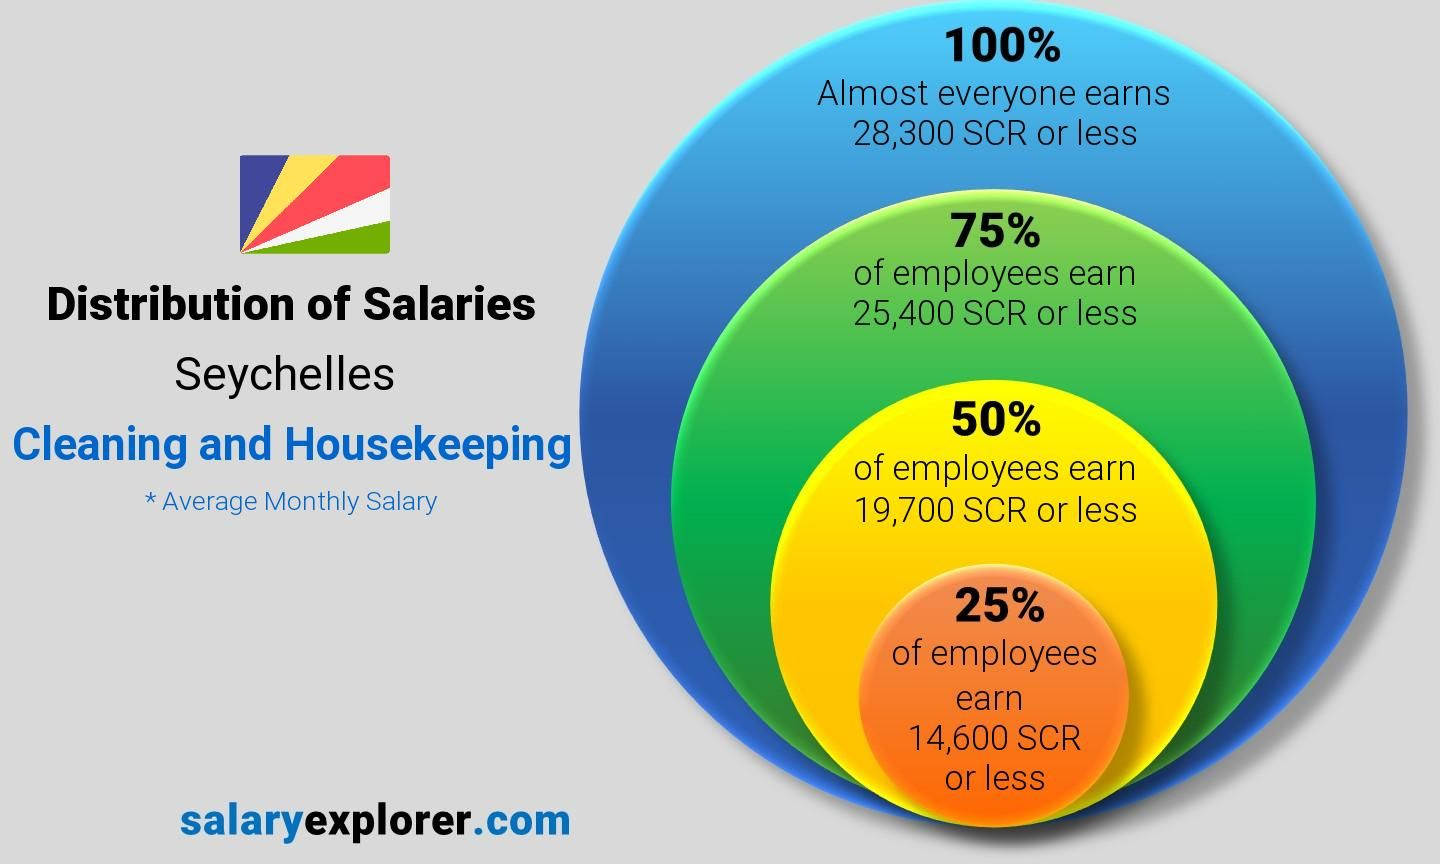 Cleaning and Housekeeping Average Salaries in Seychelles